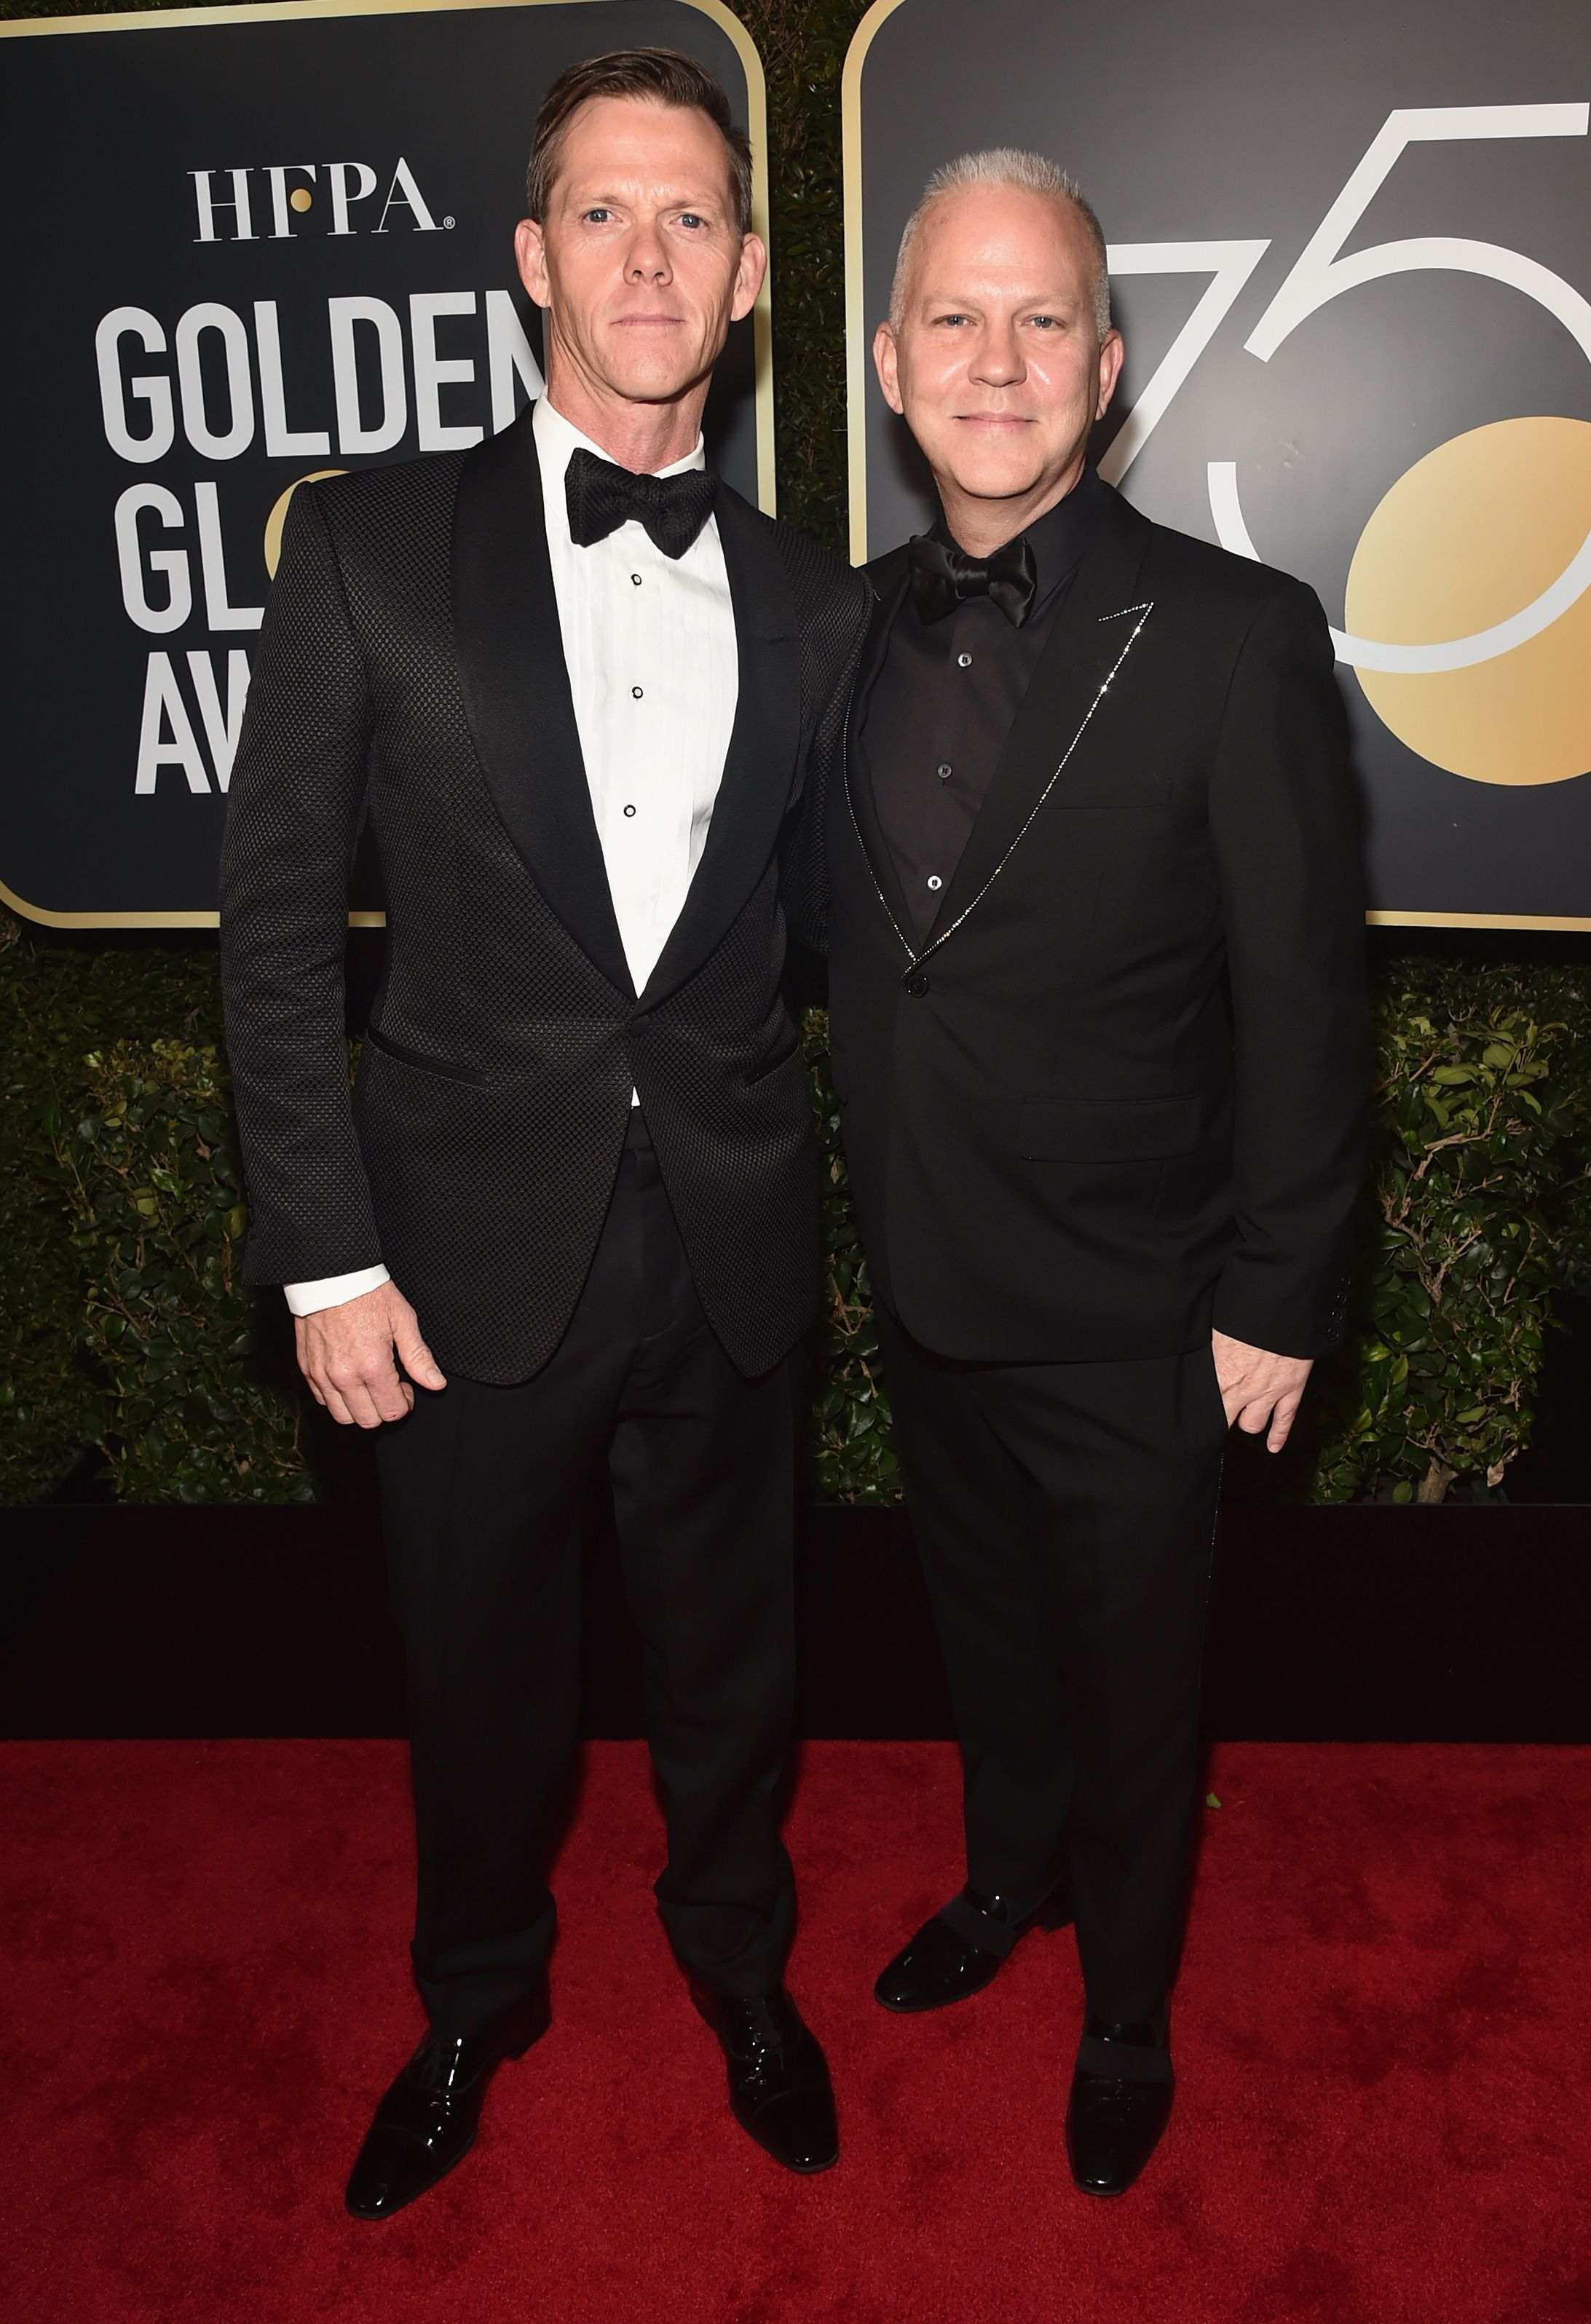 Producer Ryan Murphy and David Miller at the 75th Annual Golden Globe Awards at The Beverly Hilton Hotel on January 7, 2018 | Photo: Getty Images